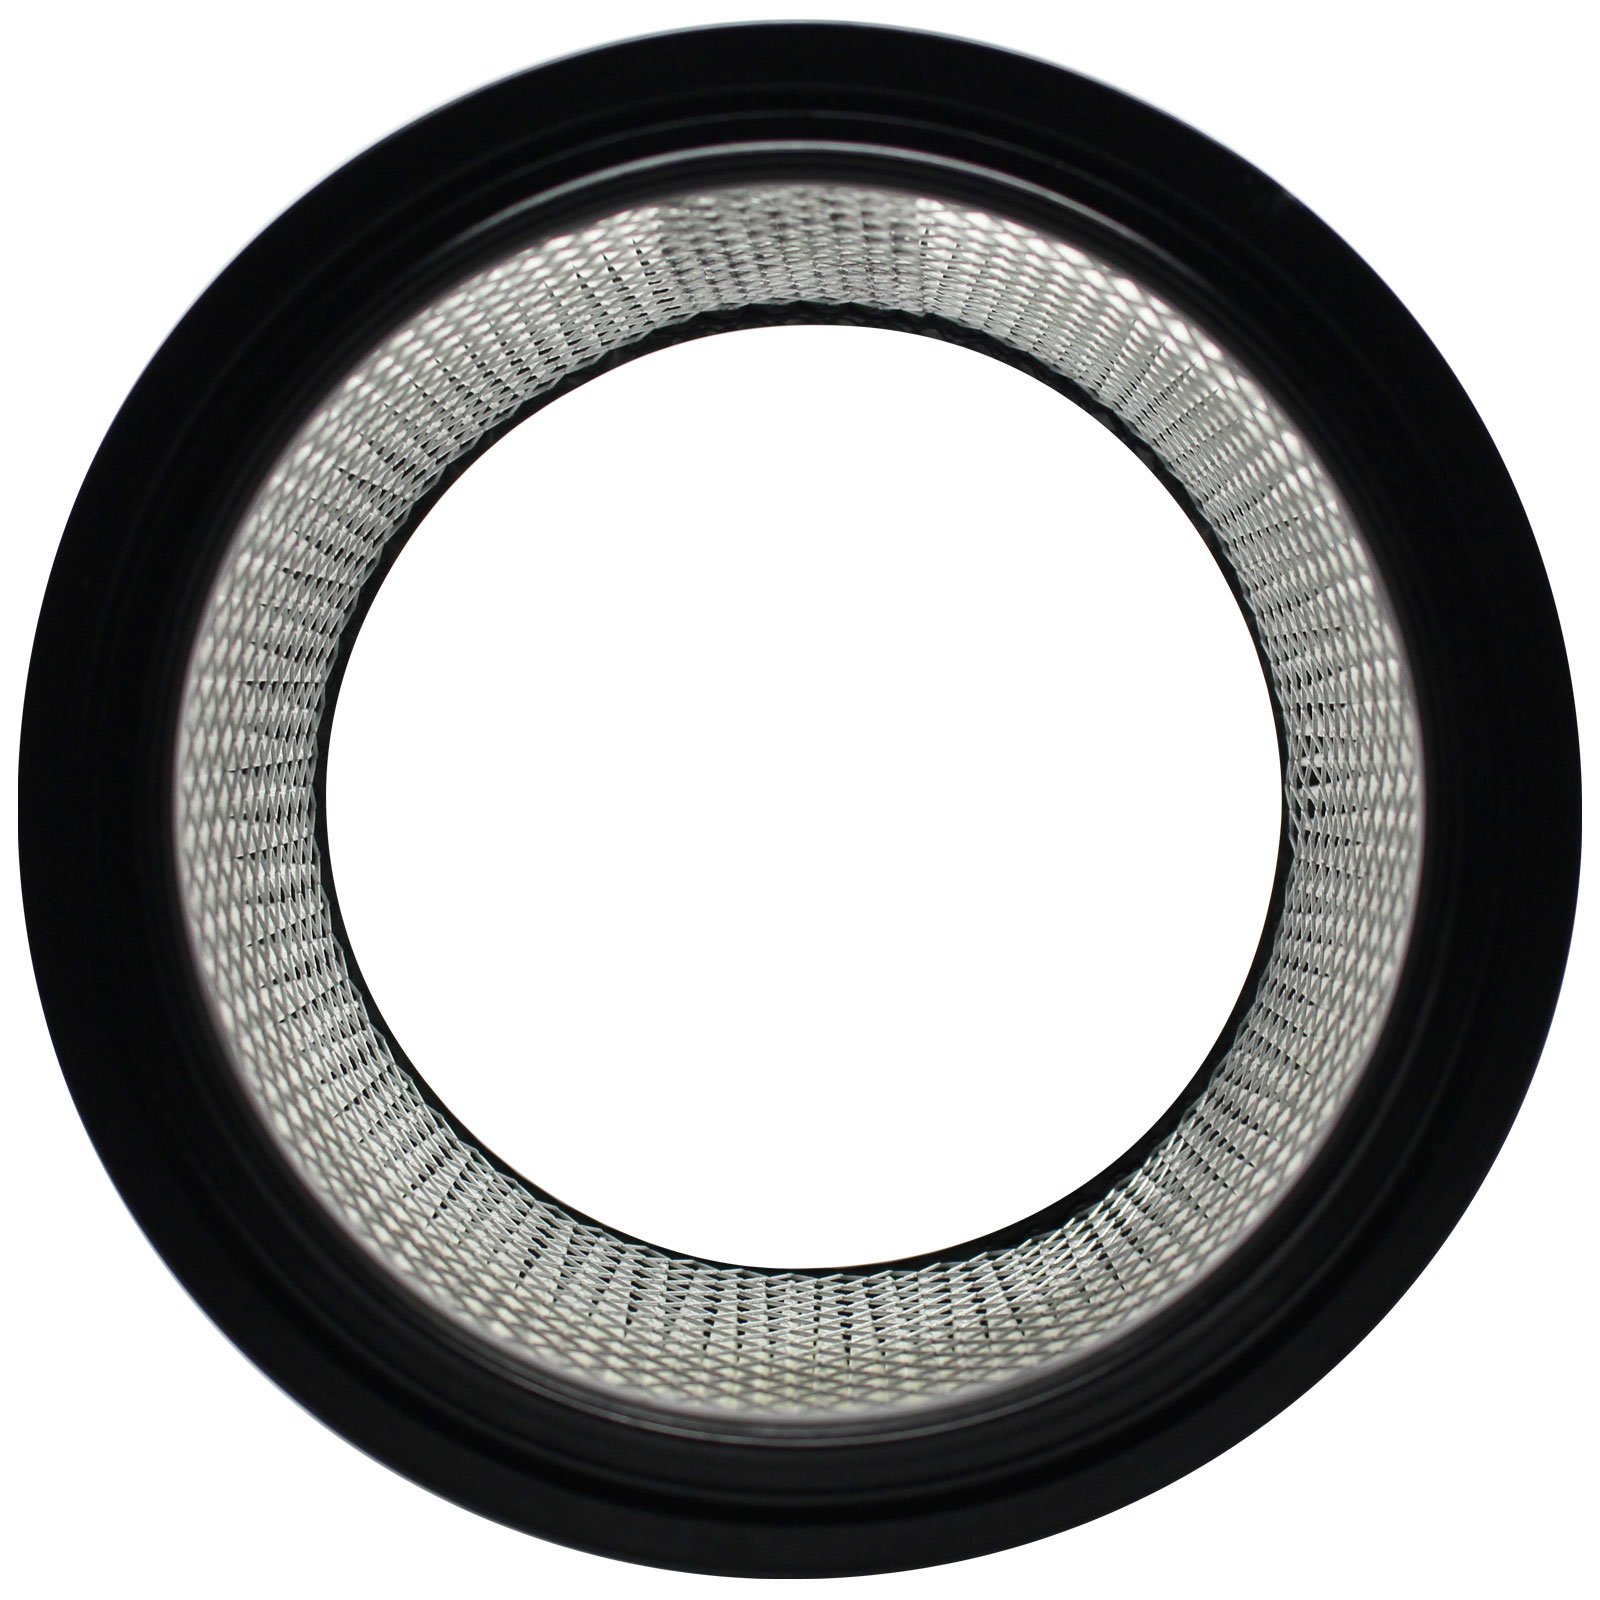 Replacement Shop-Vac BullDog 587-08-00 Vacuum Cartridge Filter - Compatible Shop-Vac 90304 Cartridge Filter - image 2 of 4